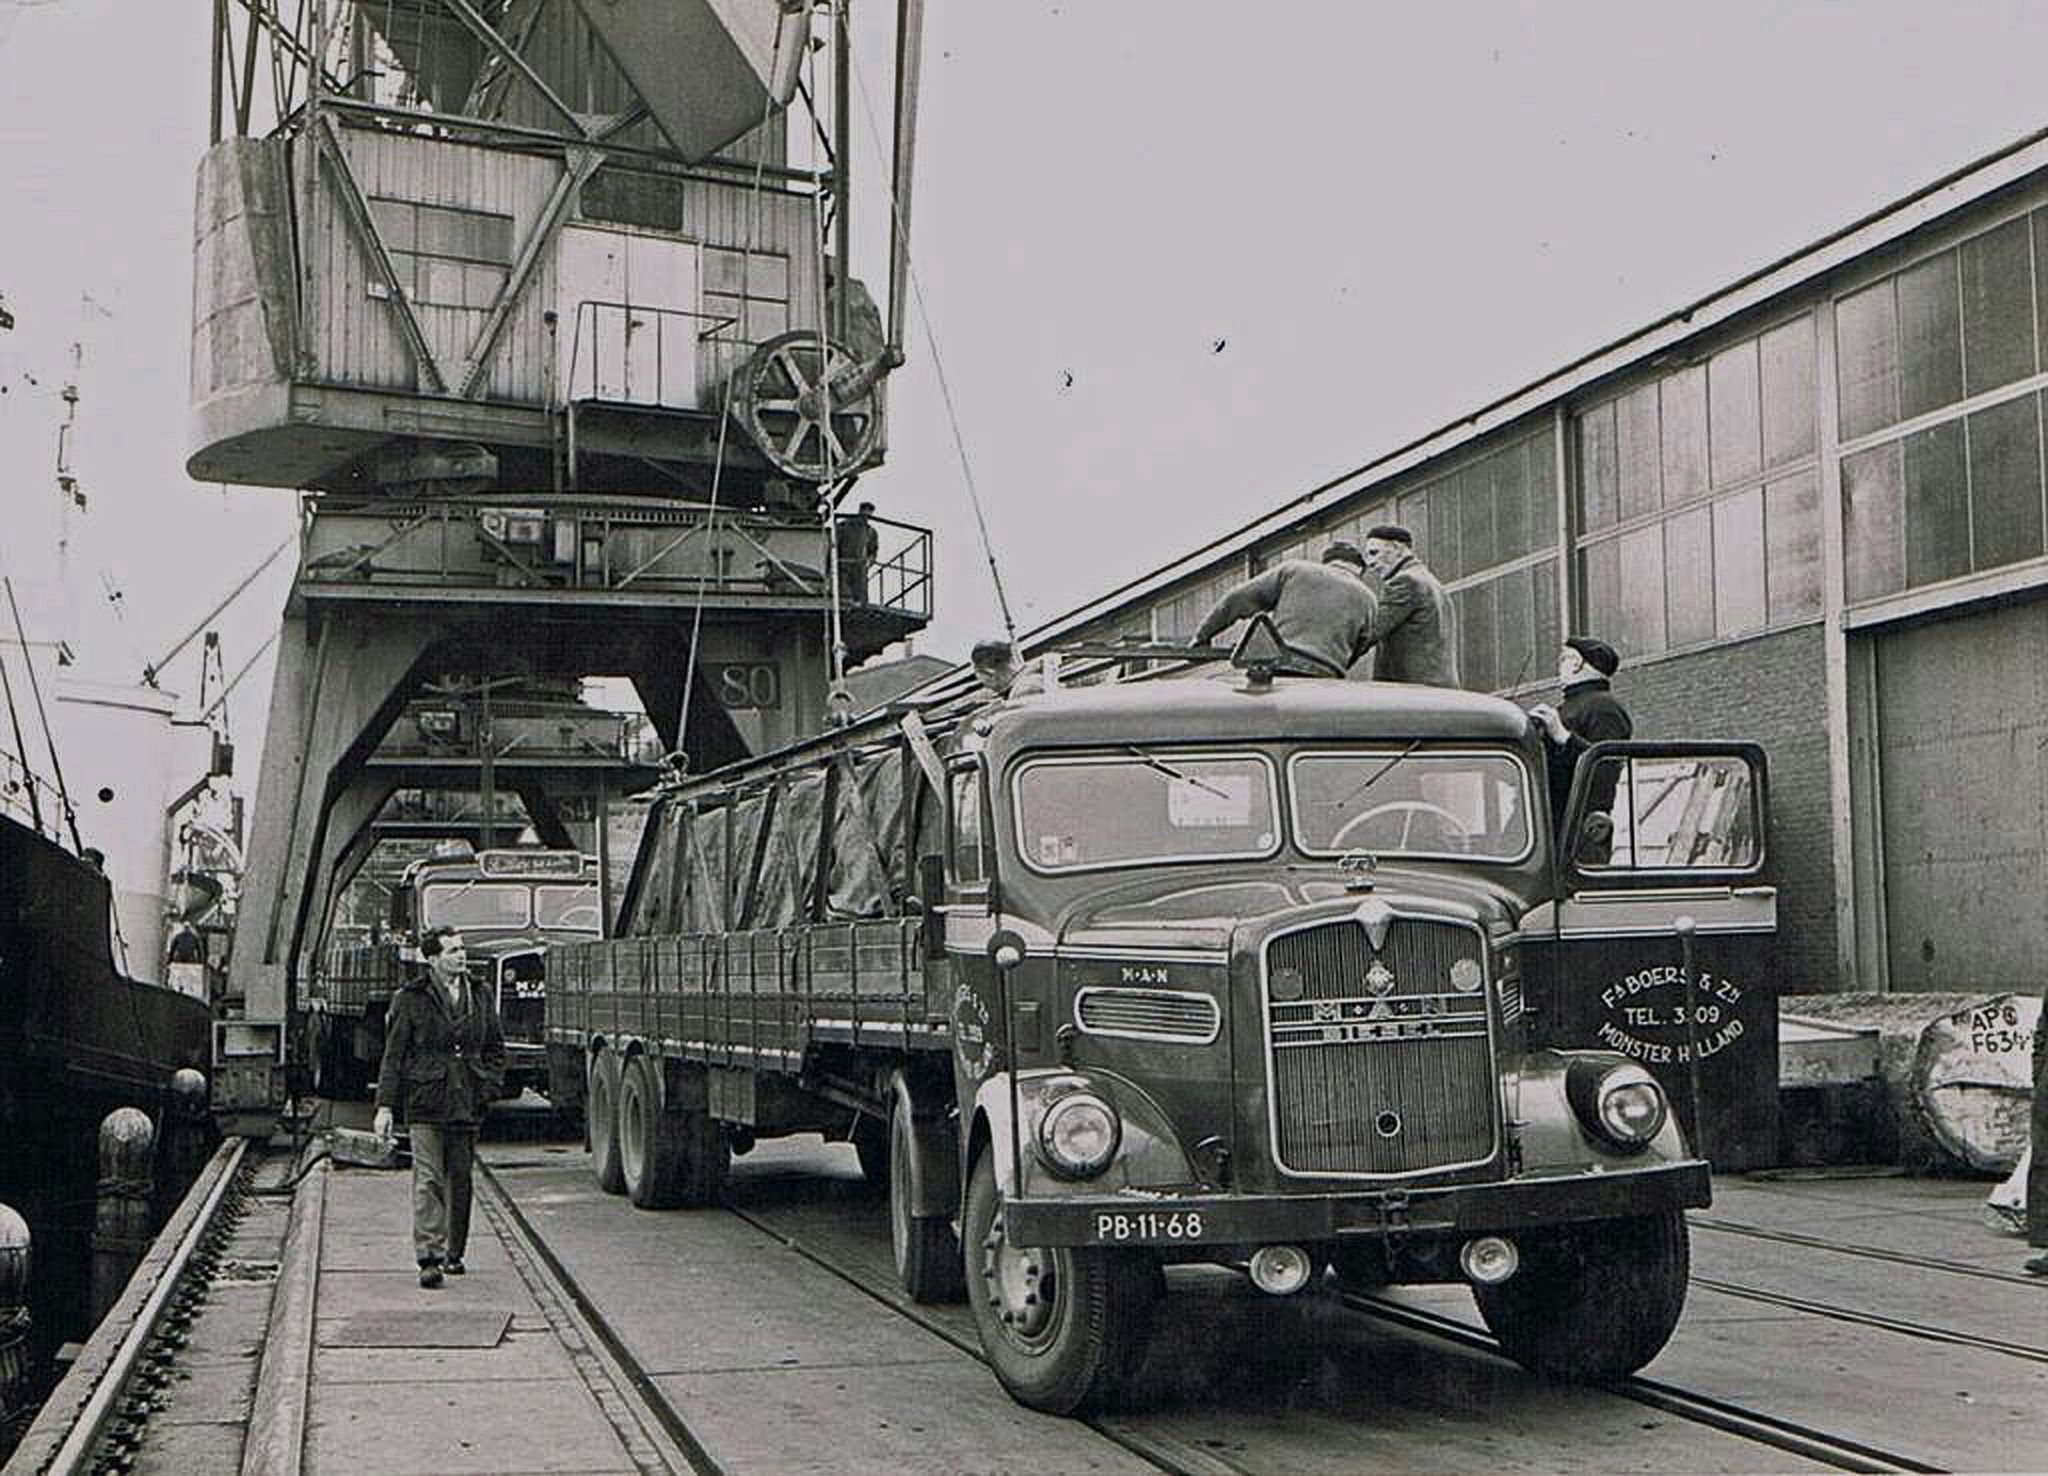 machine-laden-voor-Italie-in-de-haven-van-Amsterdam-1958--Gerrit-archief